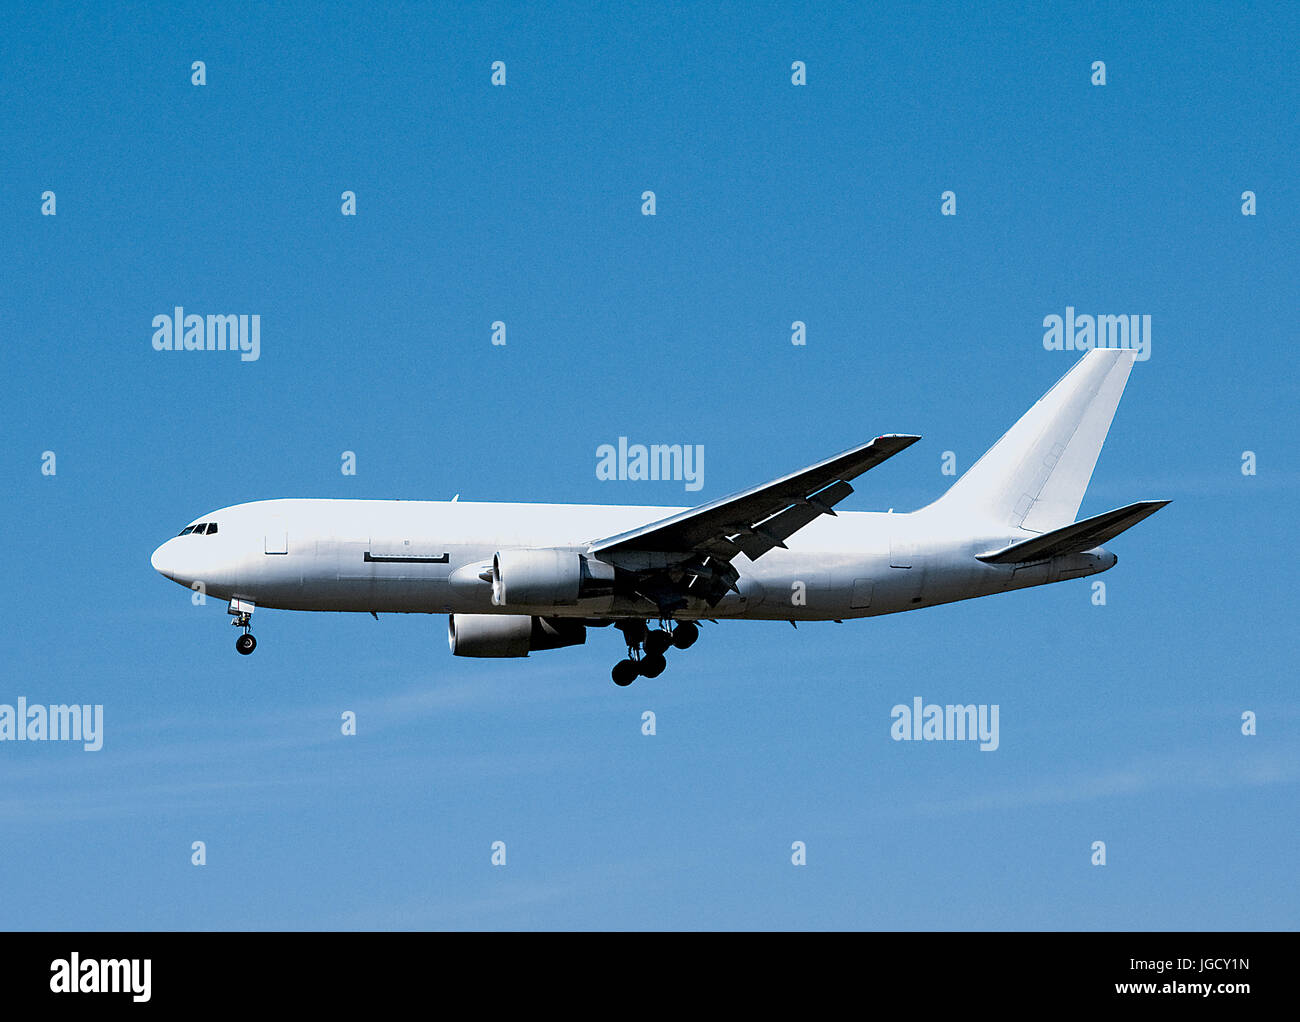 Blank White Airplane - Stock Image